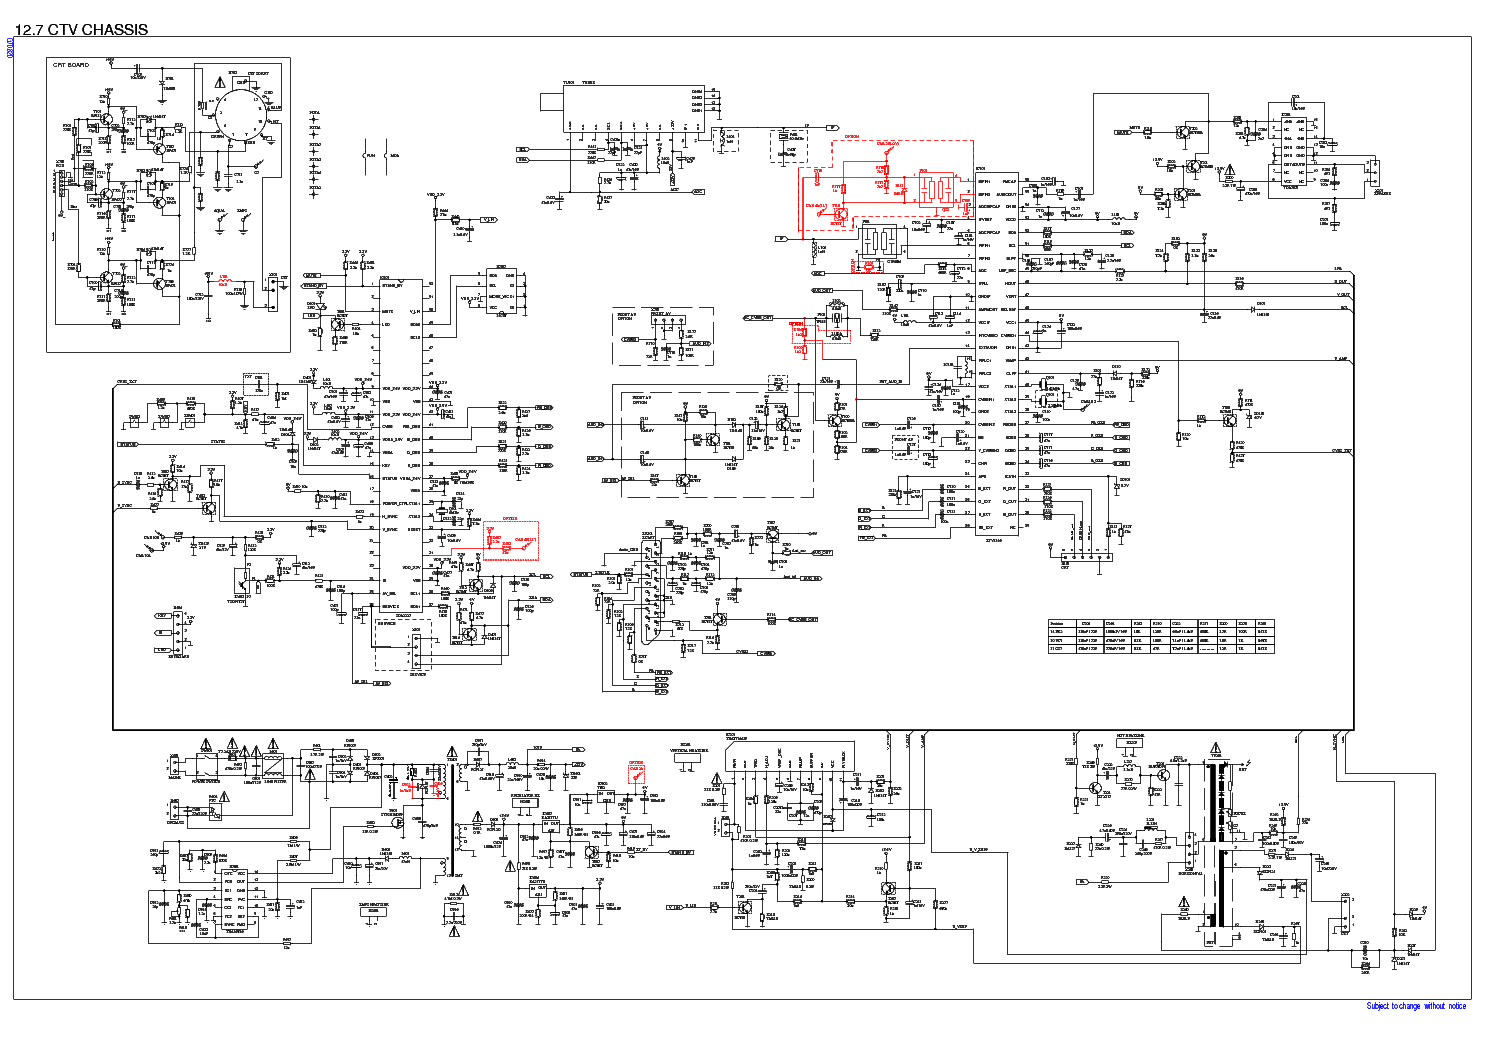 Top Circuits Page 112 Ps2 Diagram Free Download Wiring Diagrams Pictures Beko Tel Chassis 127 Circuit